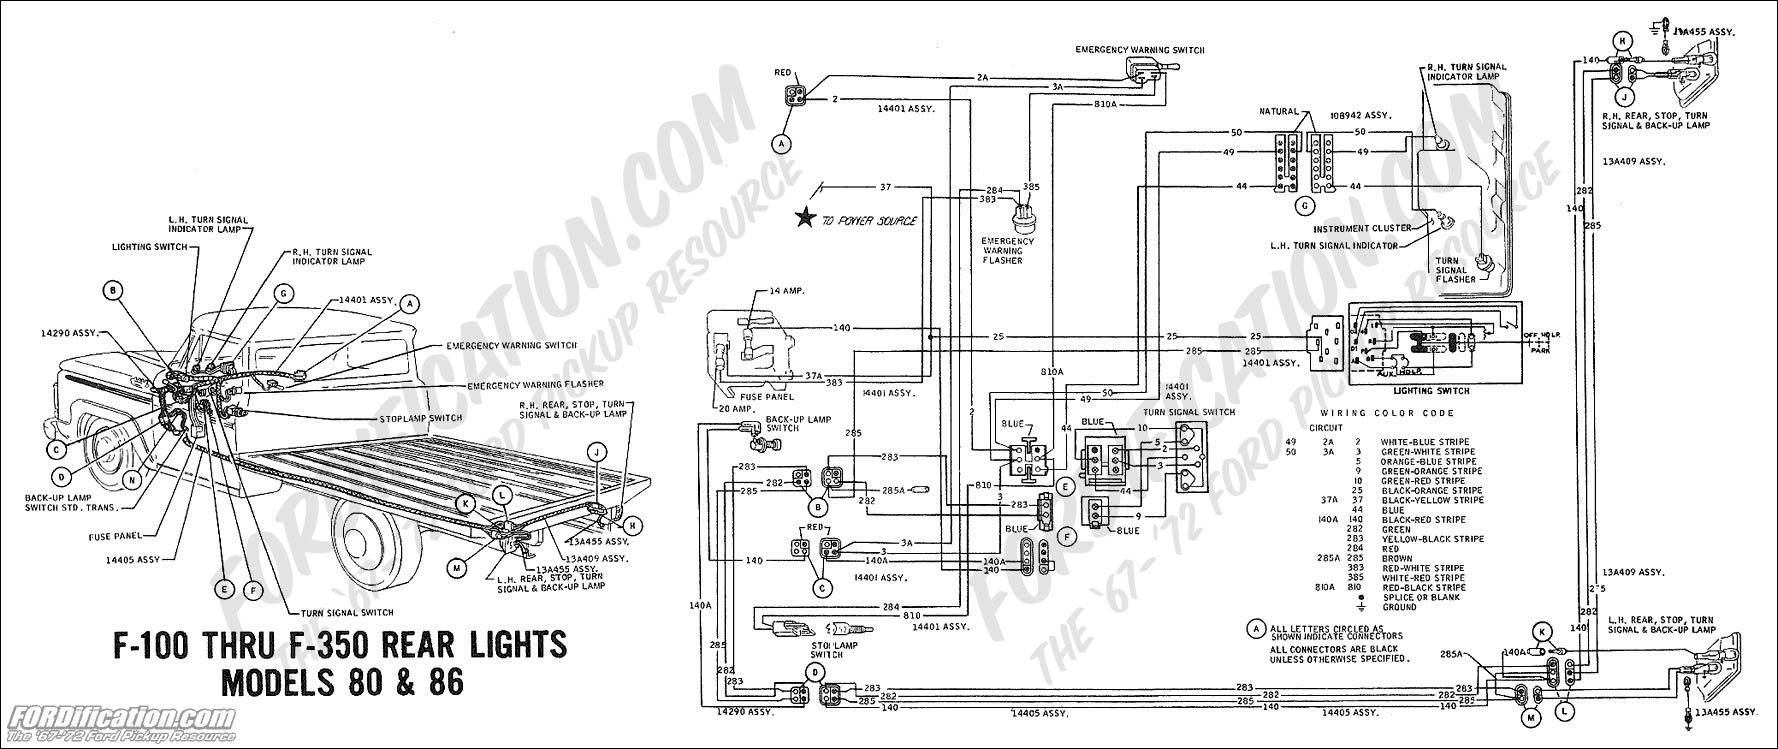 1961 Ford F100 Wiring Diagram For Color Will Be A 1955 1966 F 100 Tail Light Switch U2022 Rh 140 82 24 126 1981